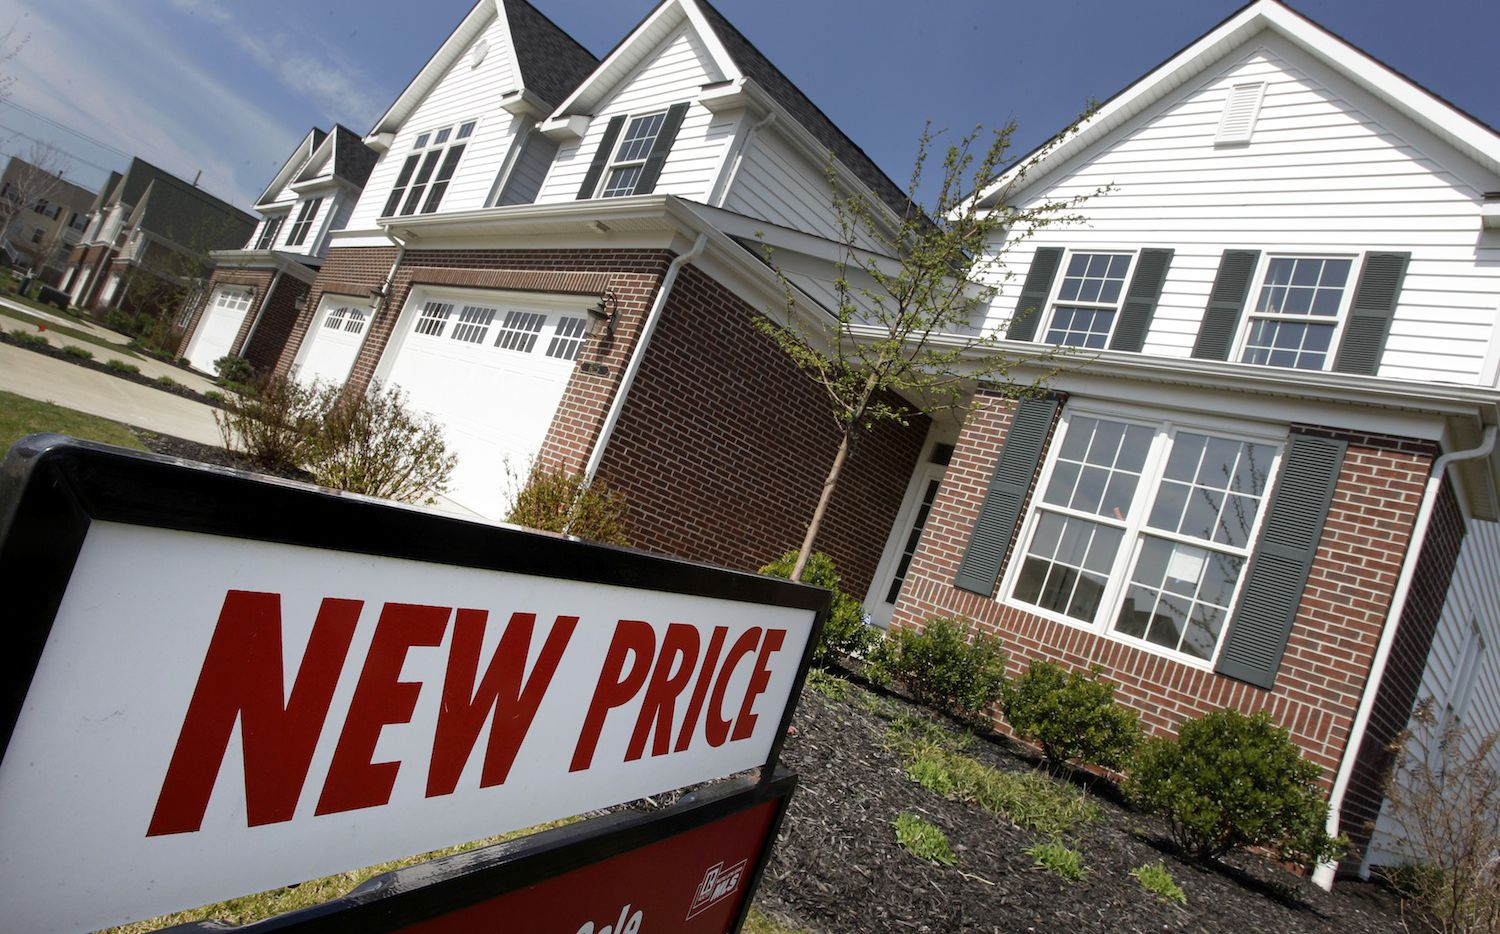 U.S. median home prices were 4 percent higher in fourth quarter 2018 from a year earlier.